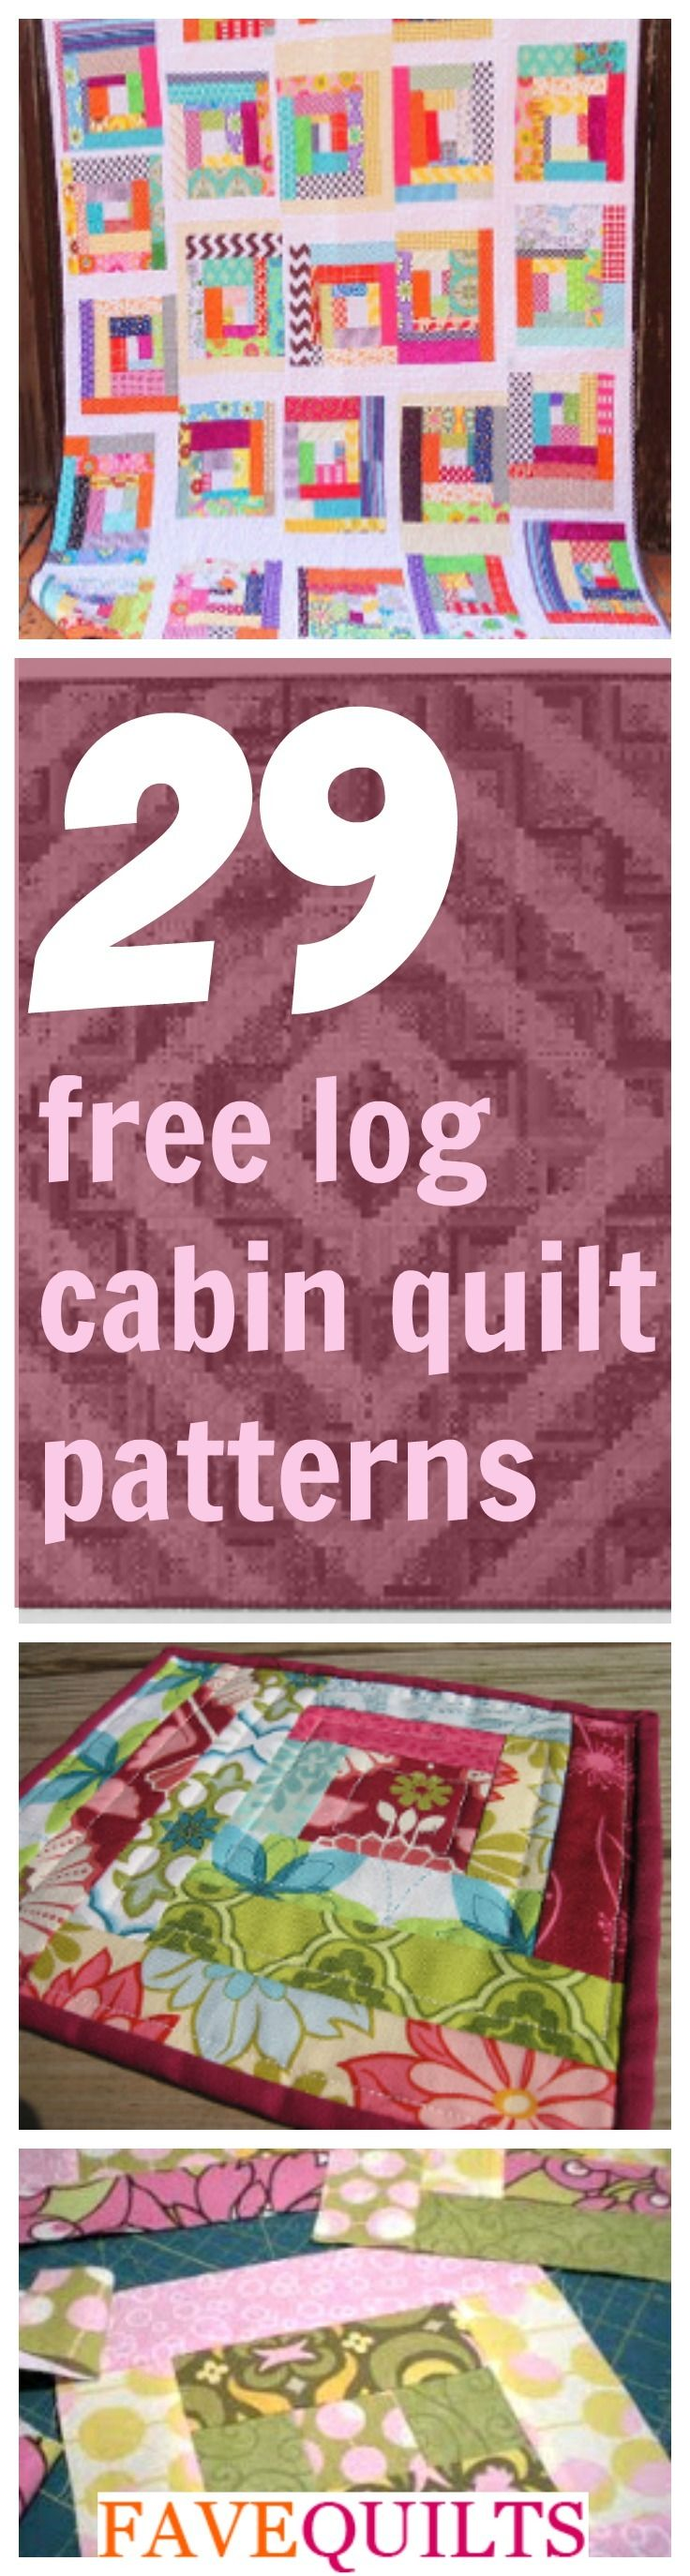 Attrayant Make Your Own Log Cabin Quilt Pattern | Log Cabin Quilt Pattern, Log Cabin  Quilts And Log Cabins